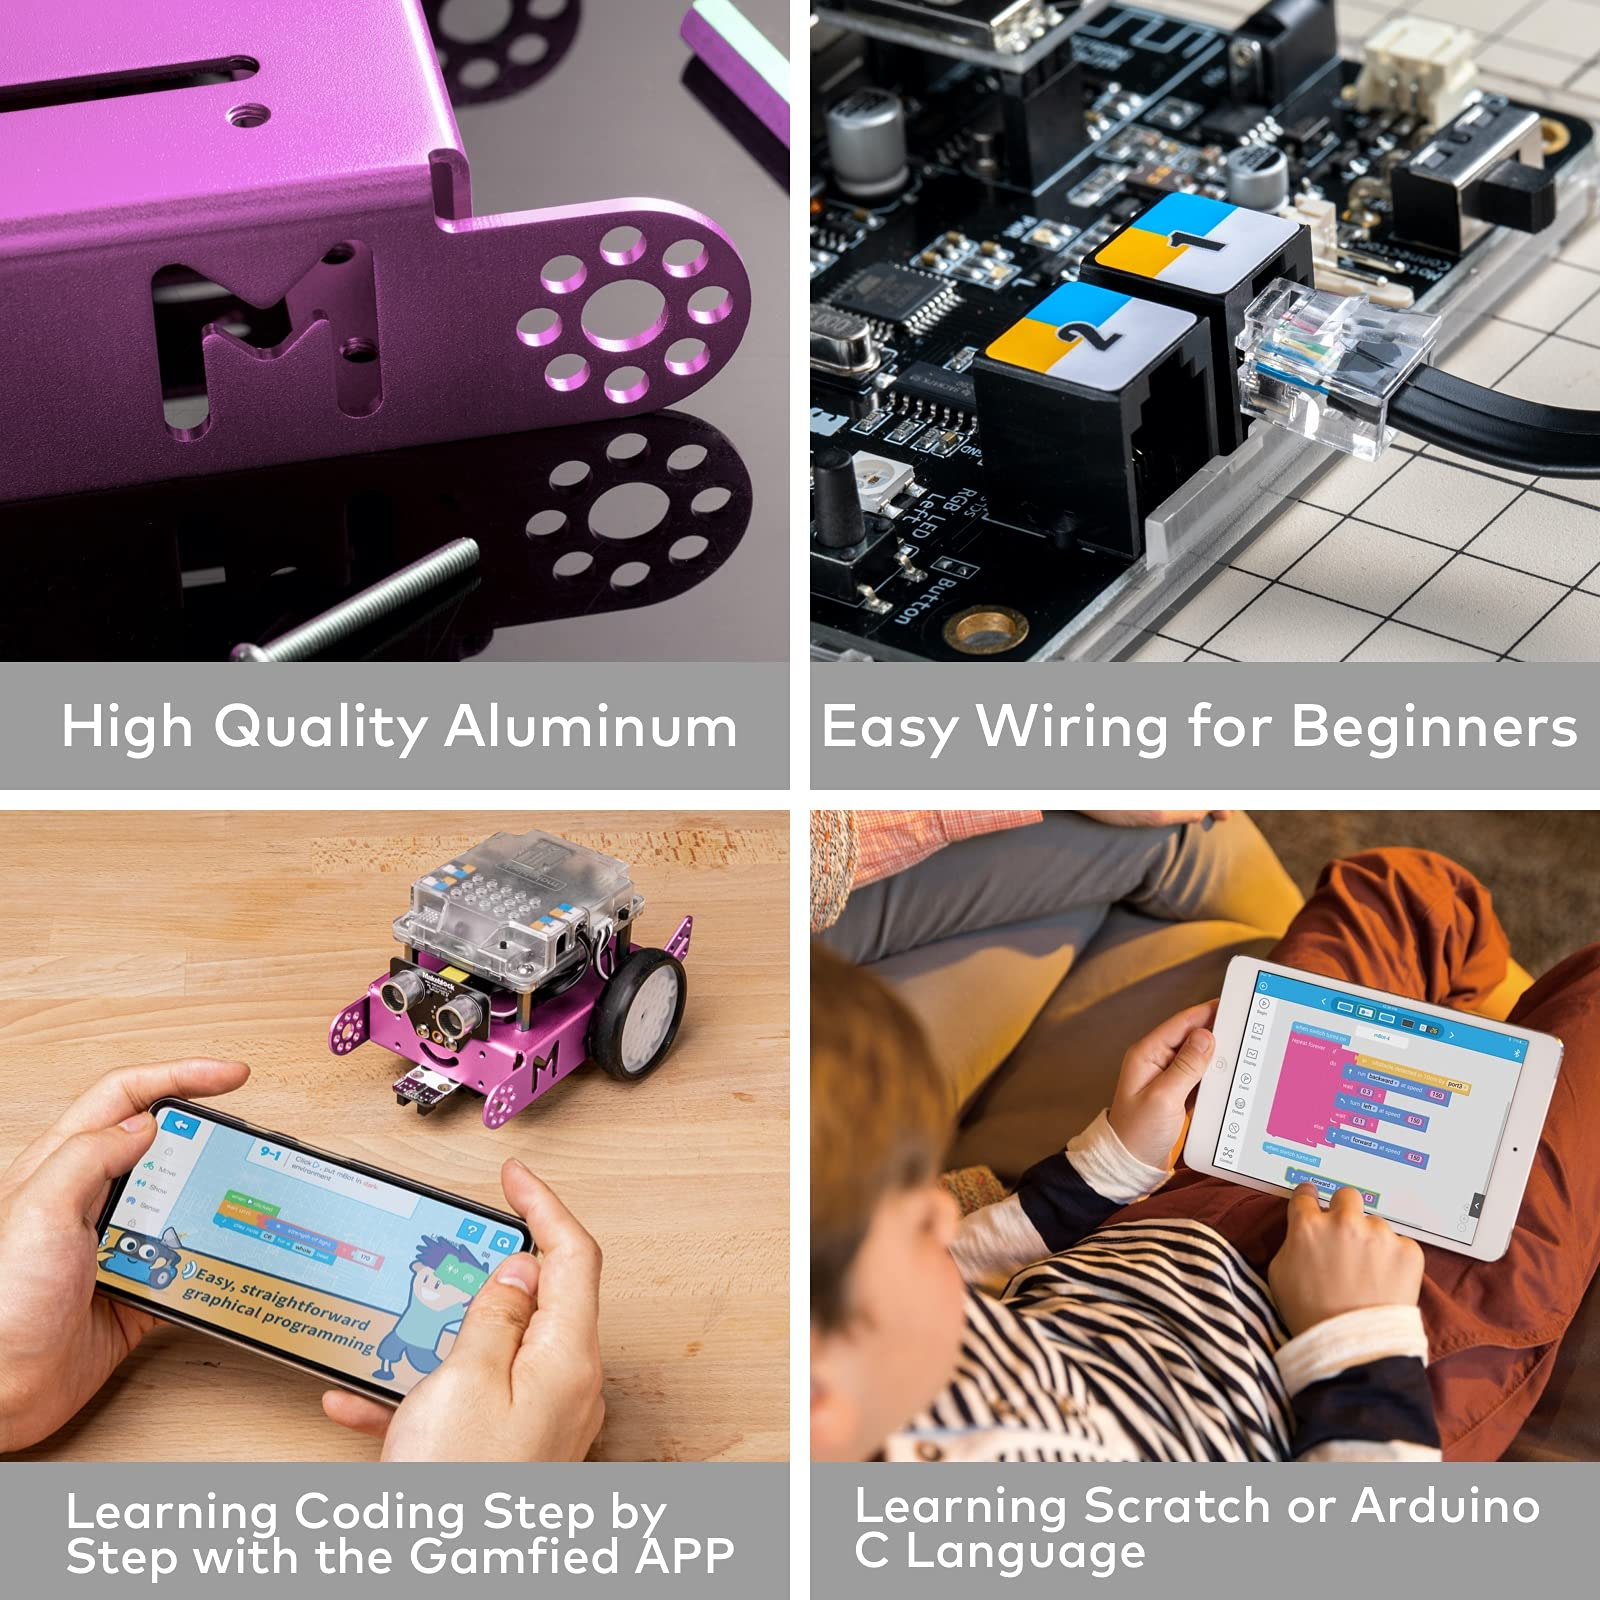 Makeblock mBot Robot Kit for Kids Ages 8+, DIY Mechanical Building Block, STEM Education, Entry-Level Programming Improves Kids' Logical Thinking and Creativity. (Pink, Bluetooth Version, Family)